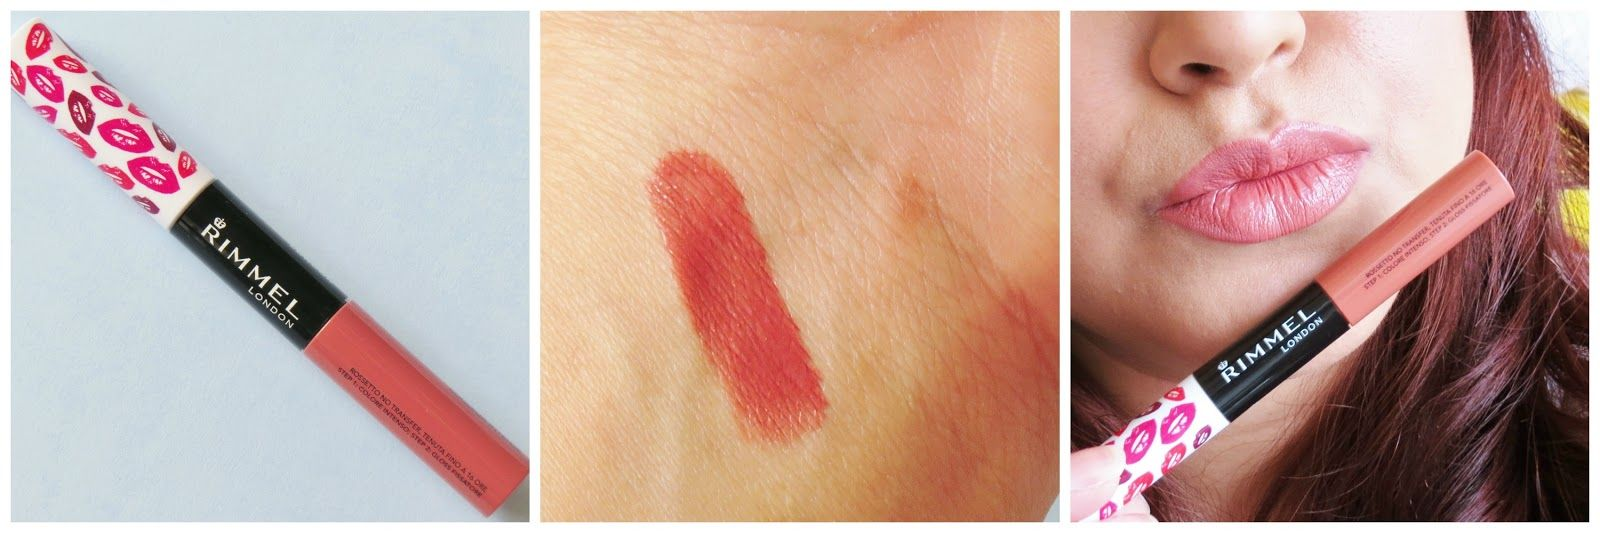 Lonestarstuff Beauty Rimmel Provocalips In Make Your Move Rimmel Provocalips Beauty How To Make